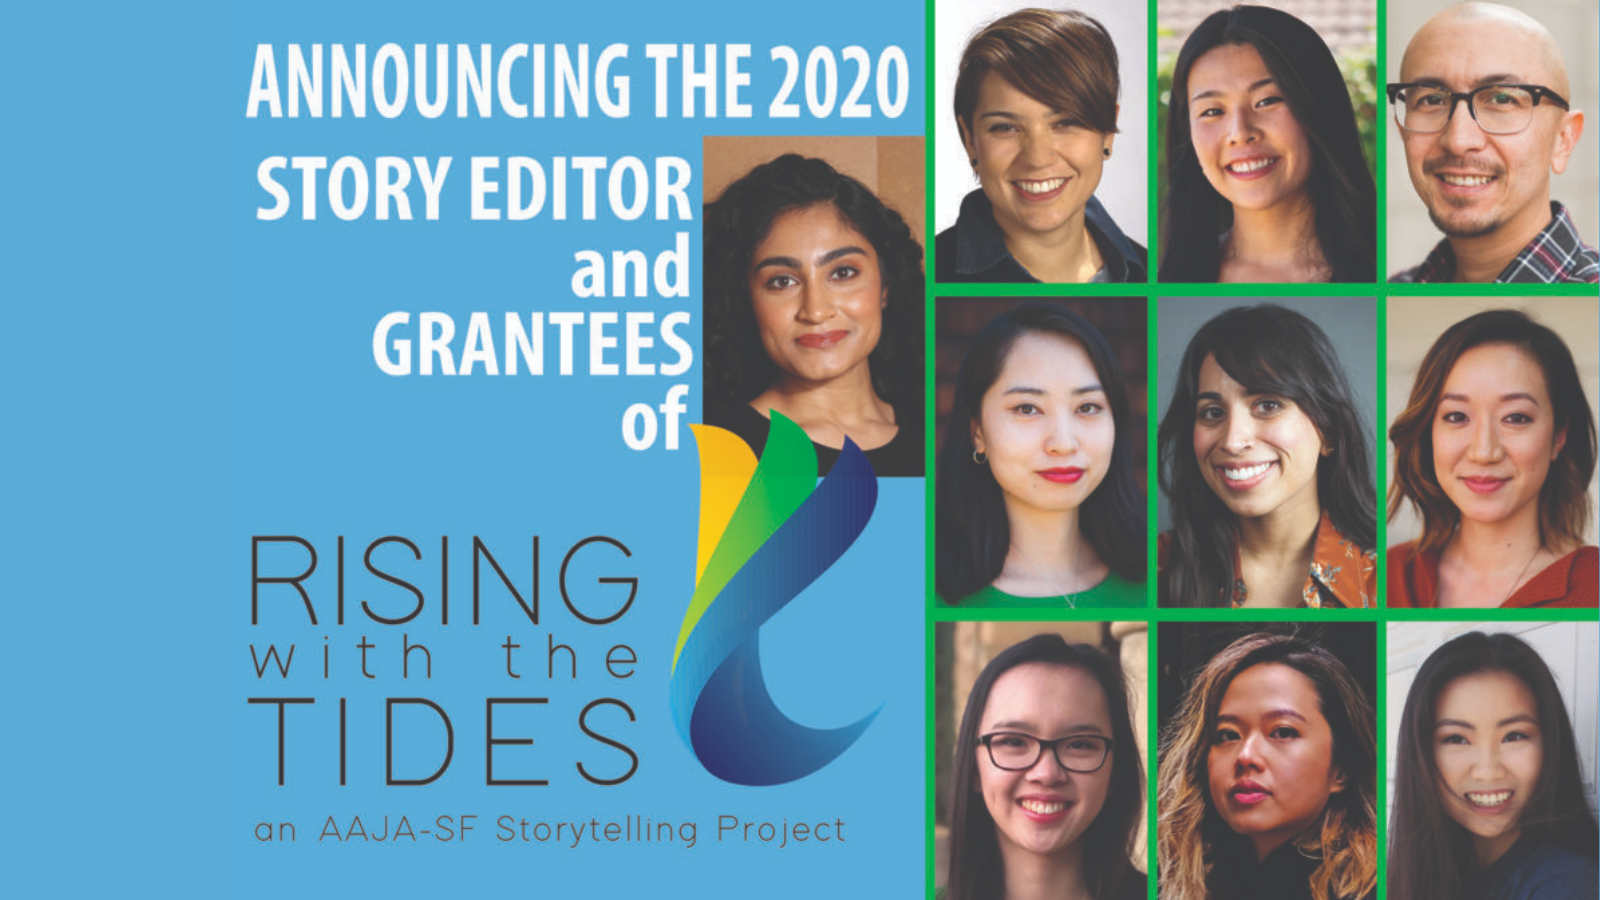 Meet the Rising with the Tides Storytellers